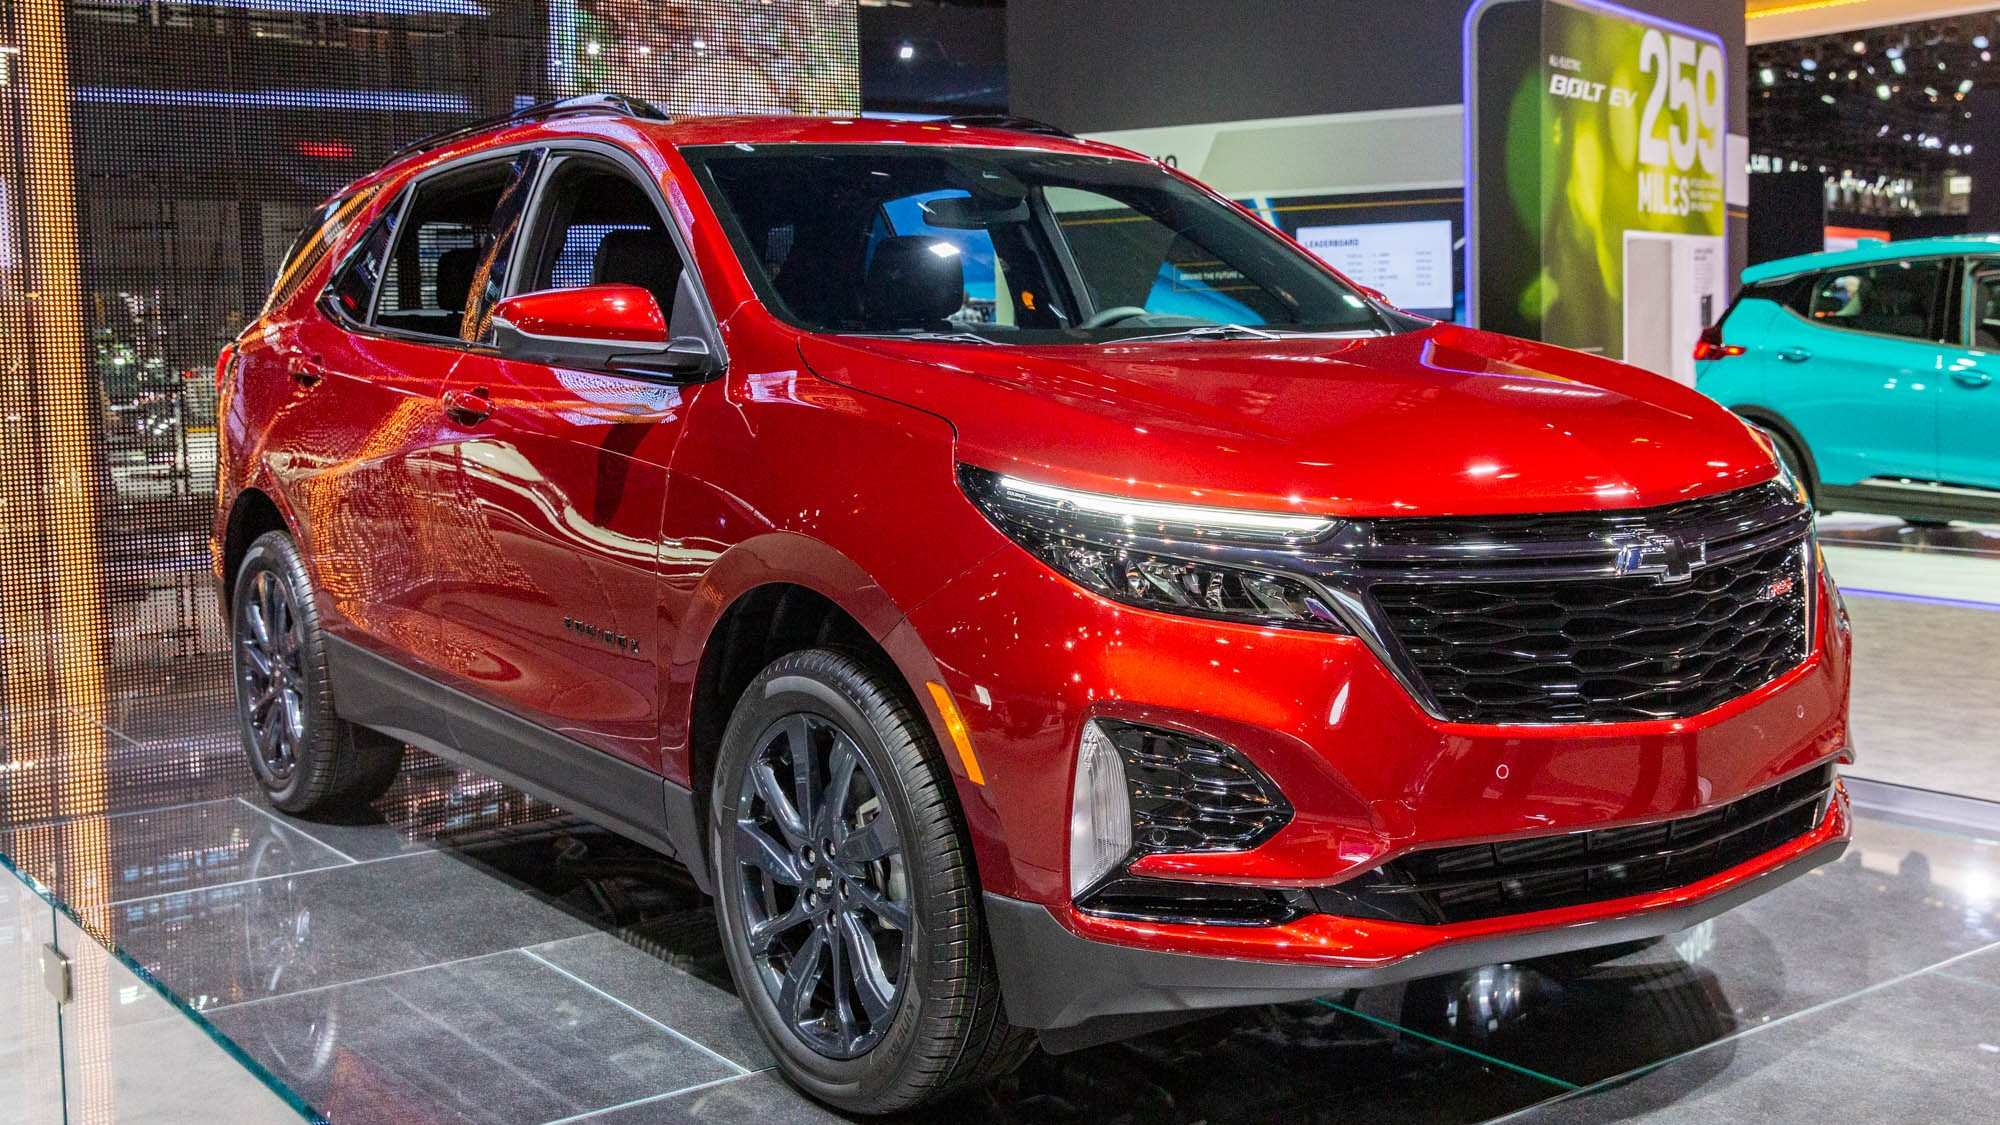 2021 Chevrolet Equinox Takes Cues From Blazer Brother 2022 Chevy Blazer Rs Headlights, Images, Inventory